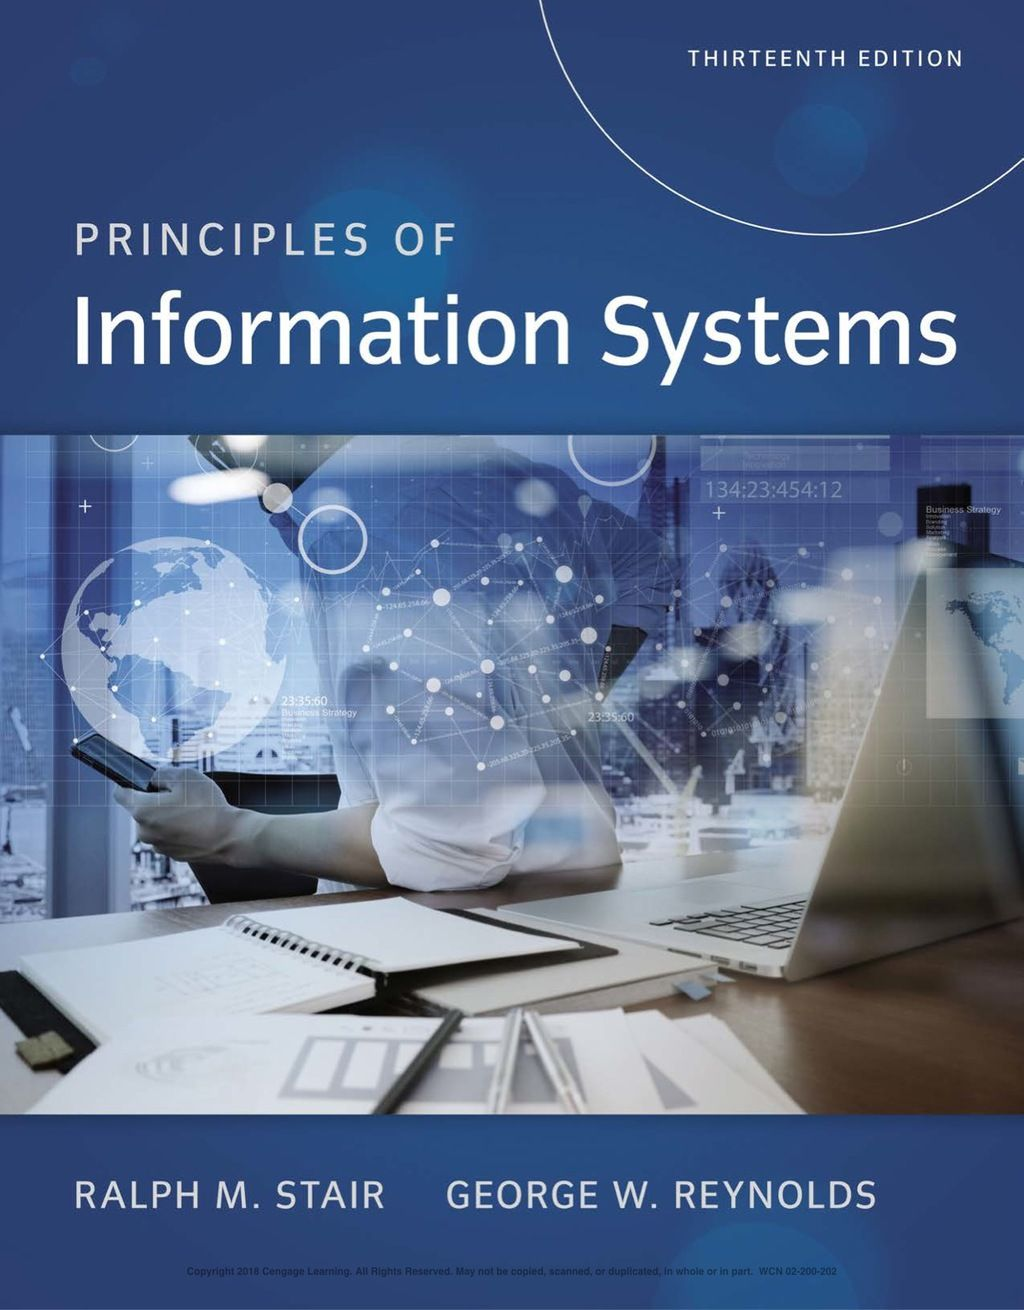 Principles of information systems ebook rental test